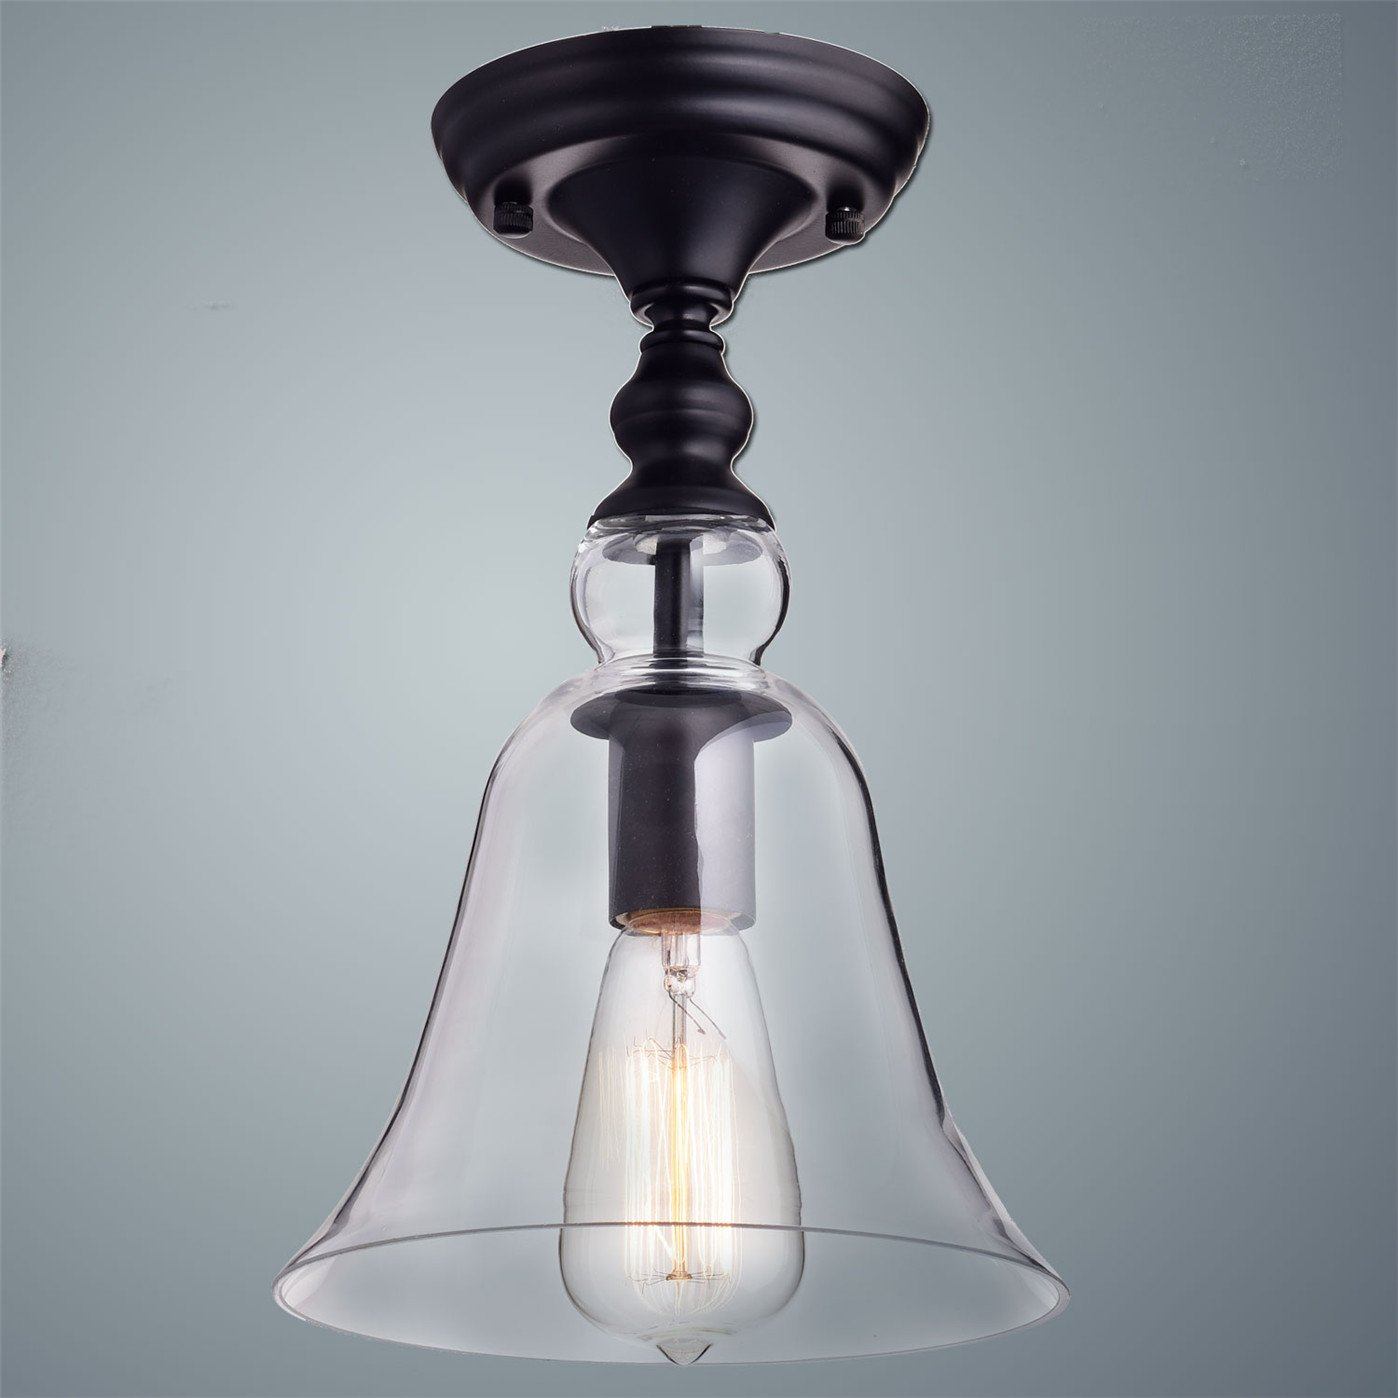 Claxy ecopower vintage hanging big bell glass shade ceiling light claxy ecopower vintage hanging big bell glass shade ceiling light 1 light amazon aloadofball Gallery